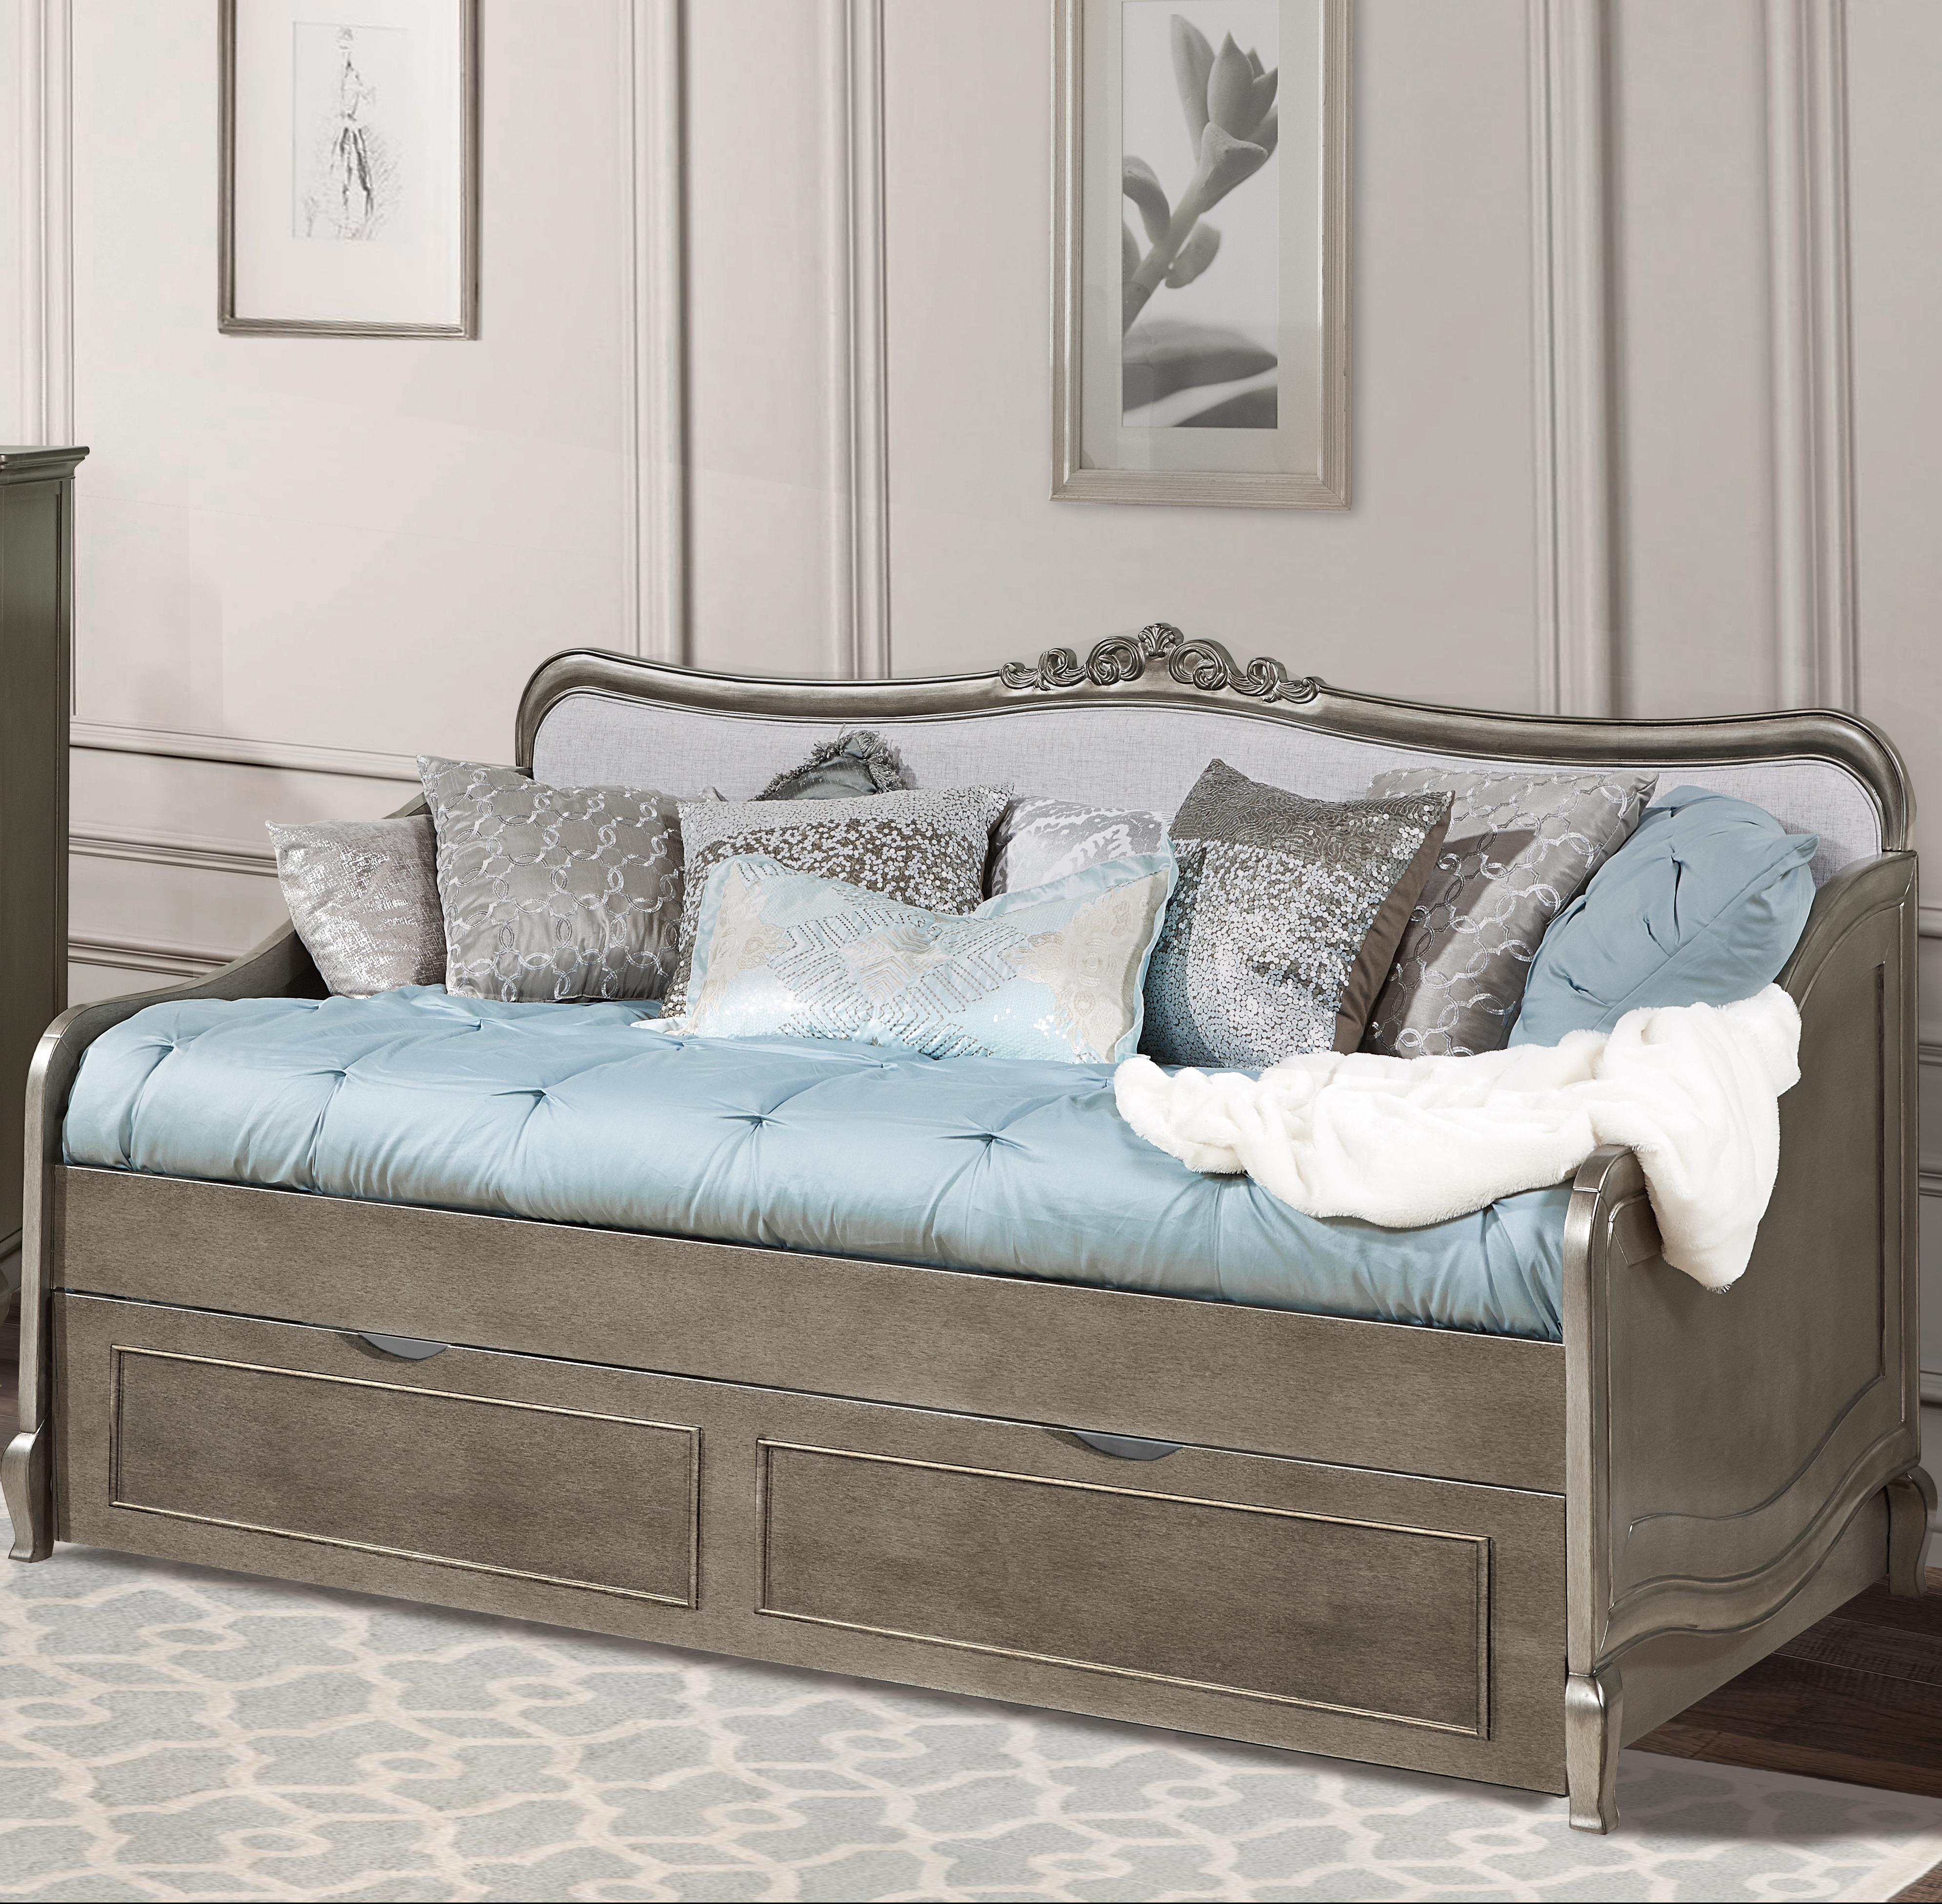 NE Kids Kensington Elizabeth Daybed - Item Number: 30040